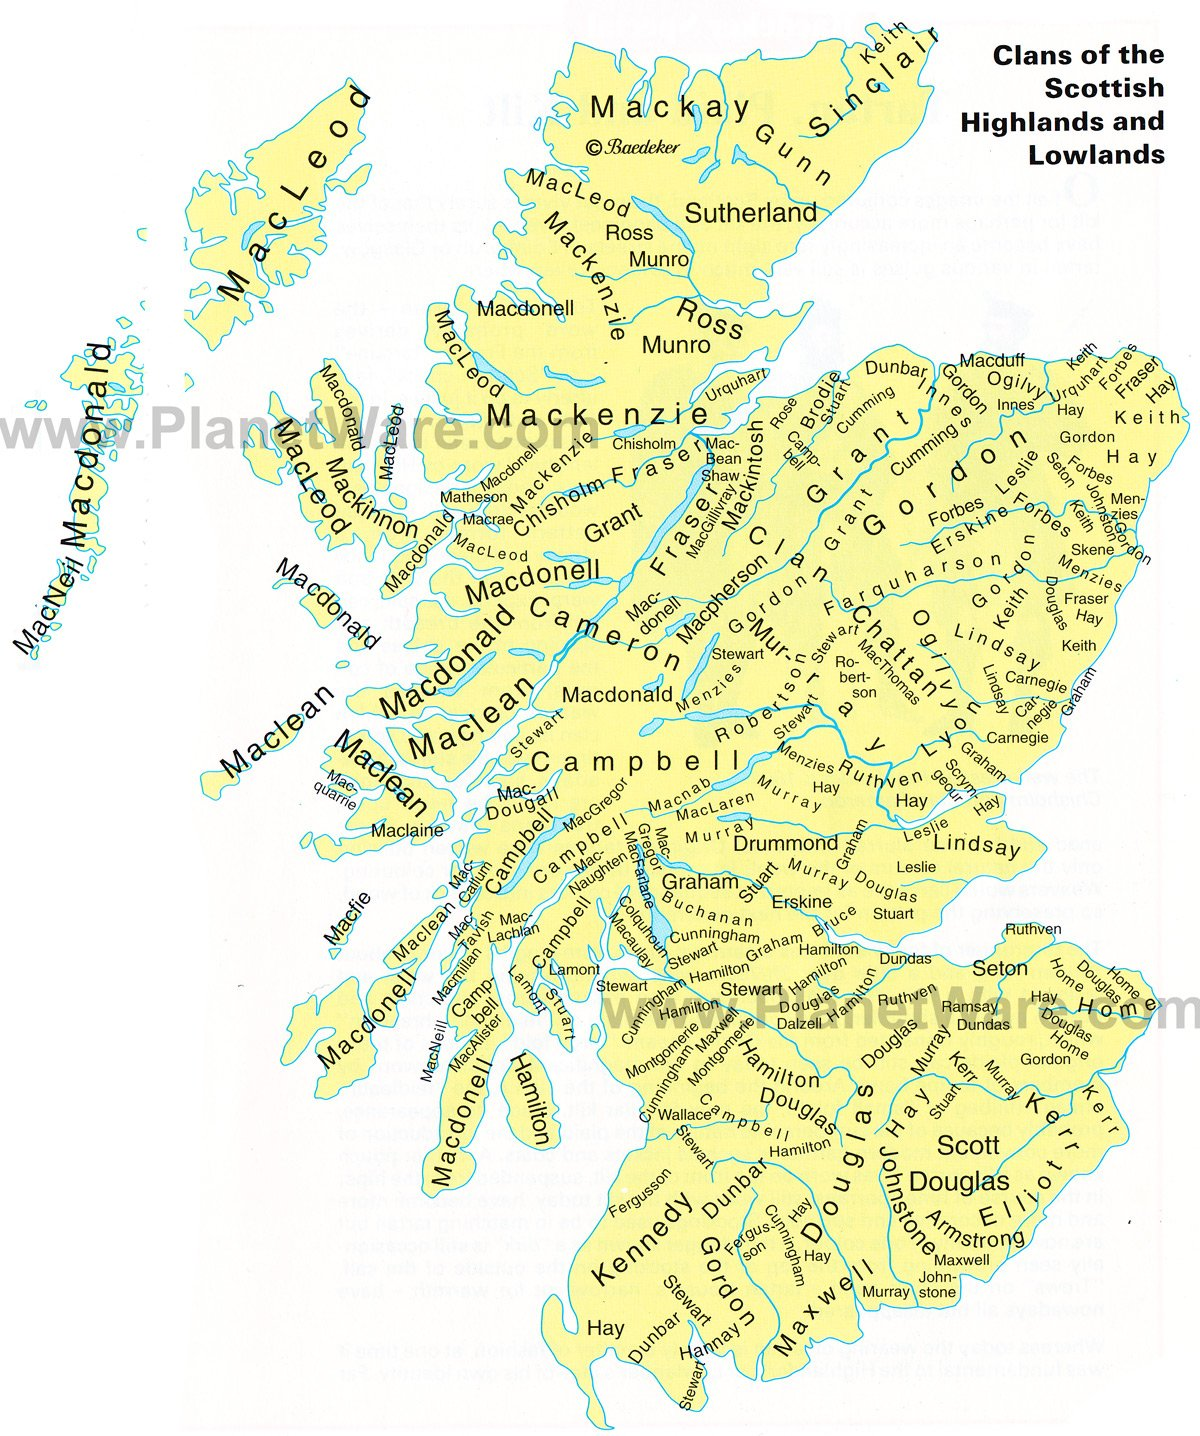 Map of Clans of the Scottish Highlands and Lowlands – Scotland Tourist Map